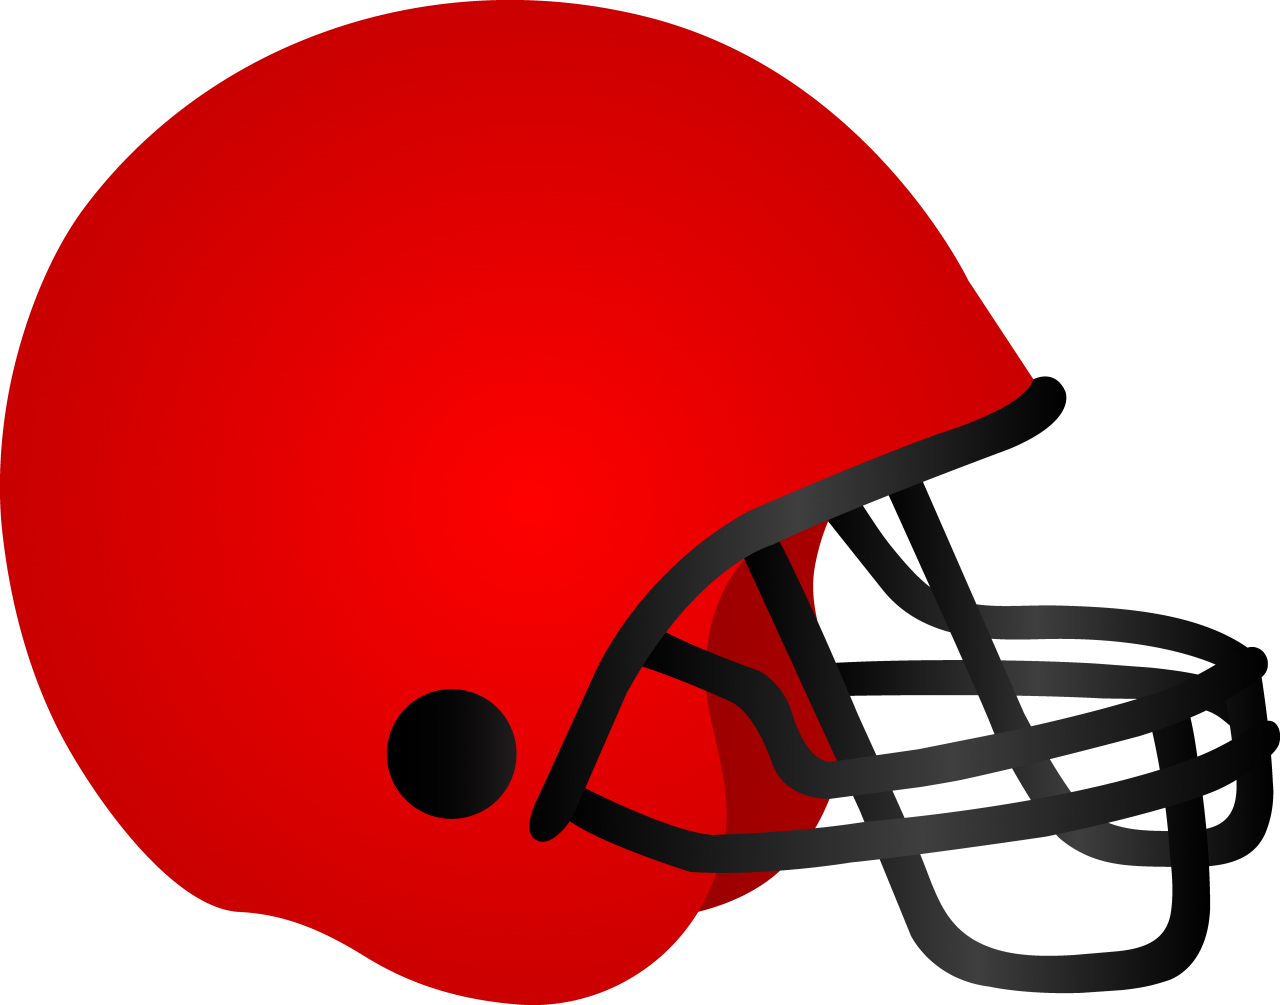 American Football Helm Clipart PNG Image.